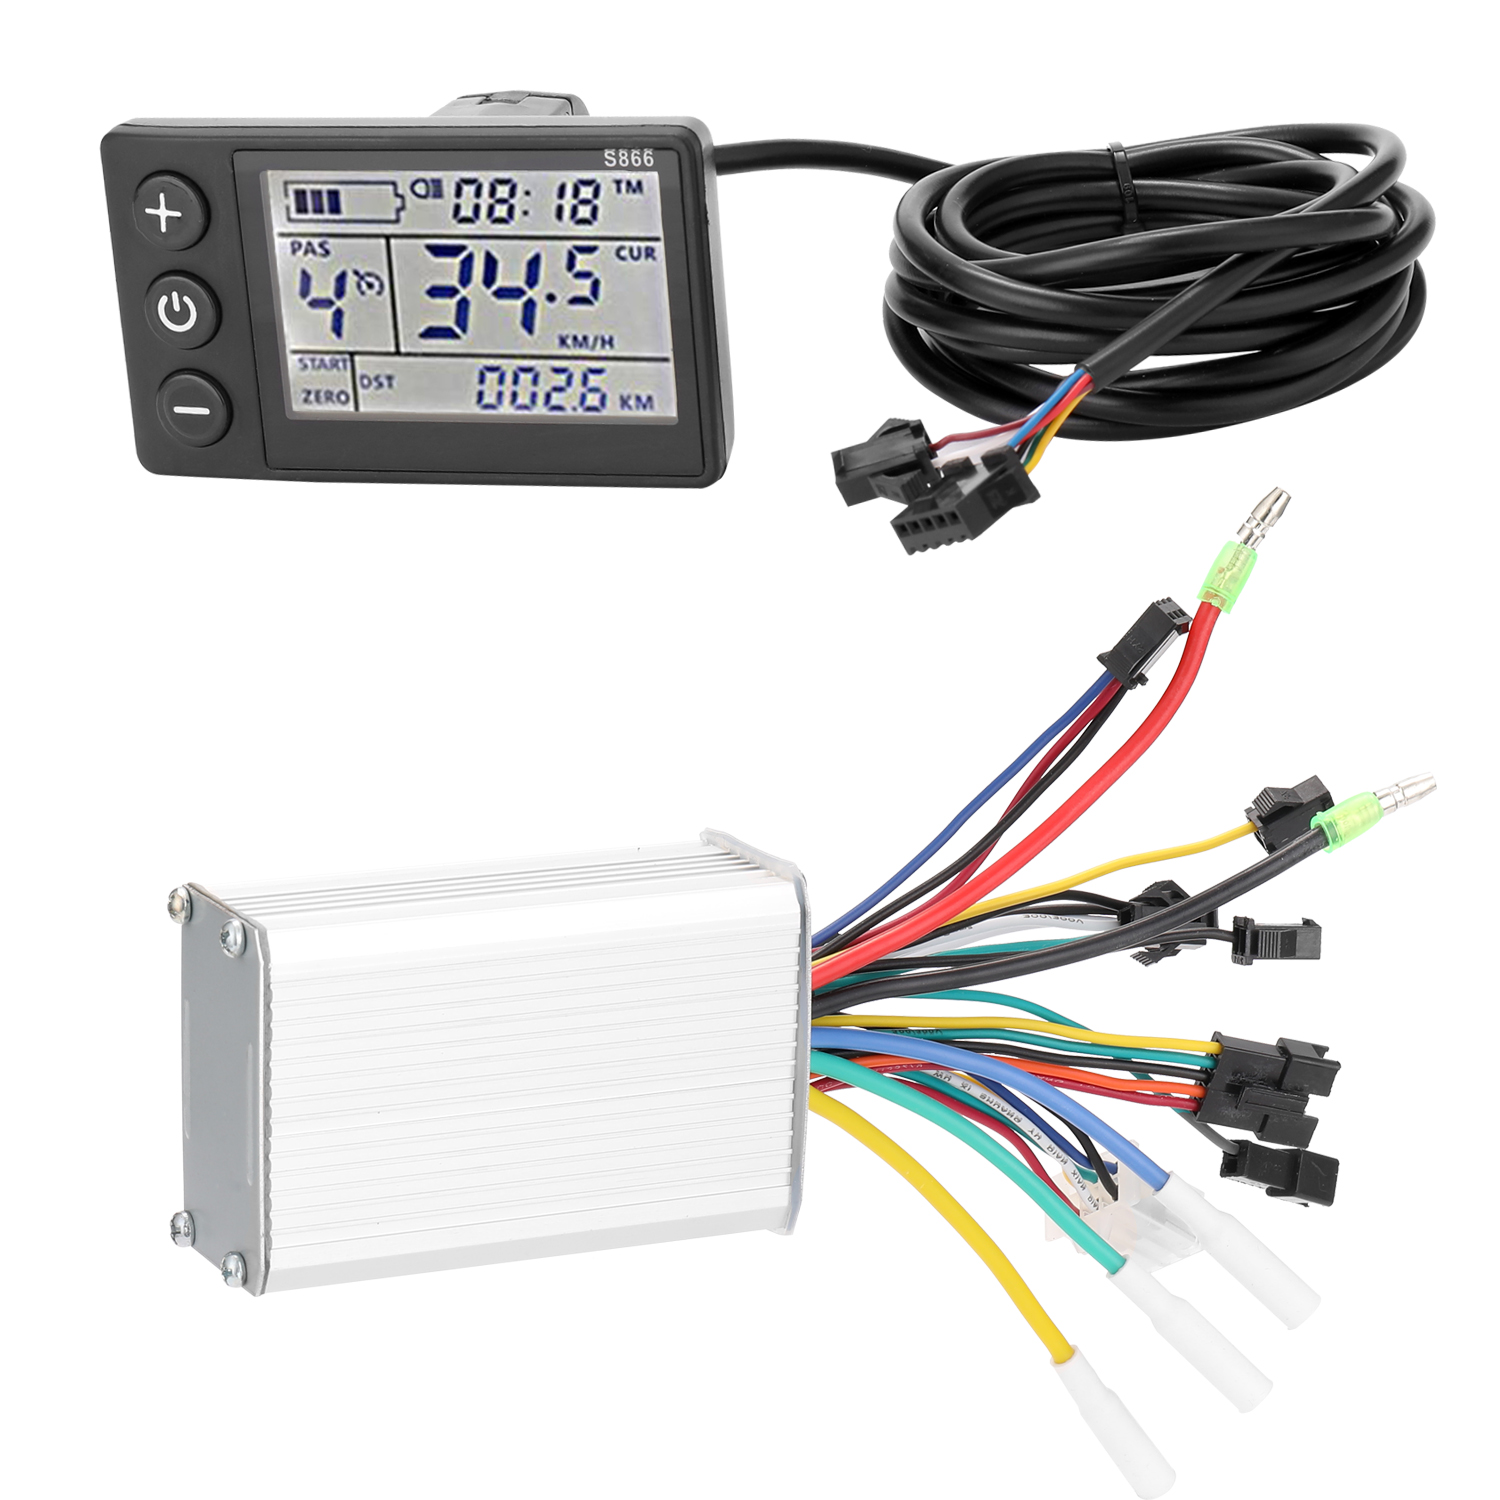 Electric Bike Controller 24V/48V/36V/<font><b>60V</b></font> 350W Brushless E-bike Controller with LCD Display Bicycle <font><b>Motor</b></font> Scooter Controller S866 image